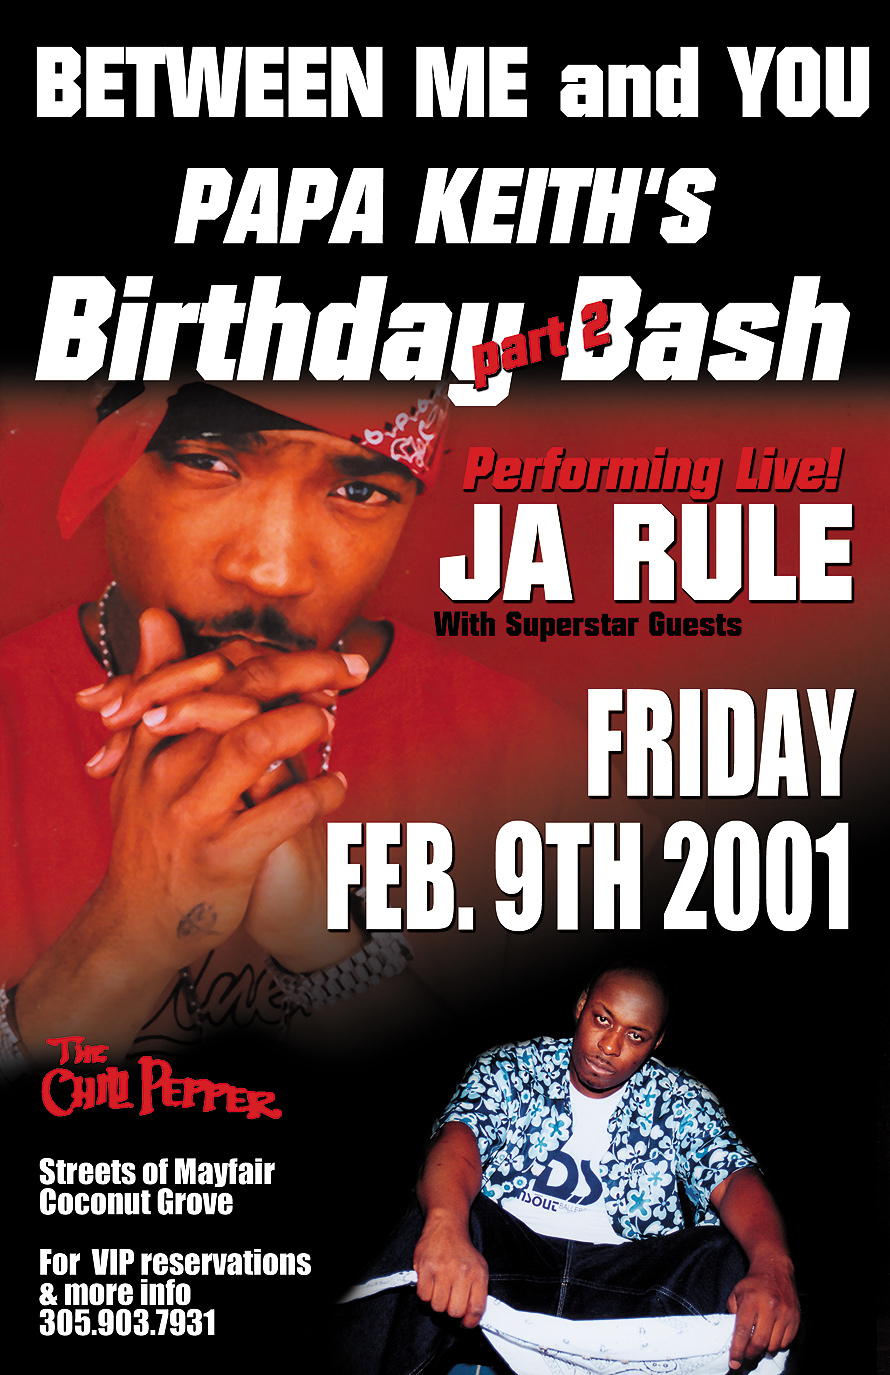 Ja Rule Performing Live at The Chili Pepper in Coconut Grove